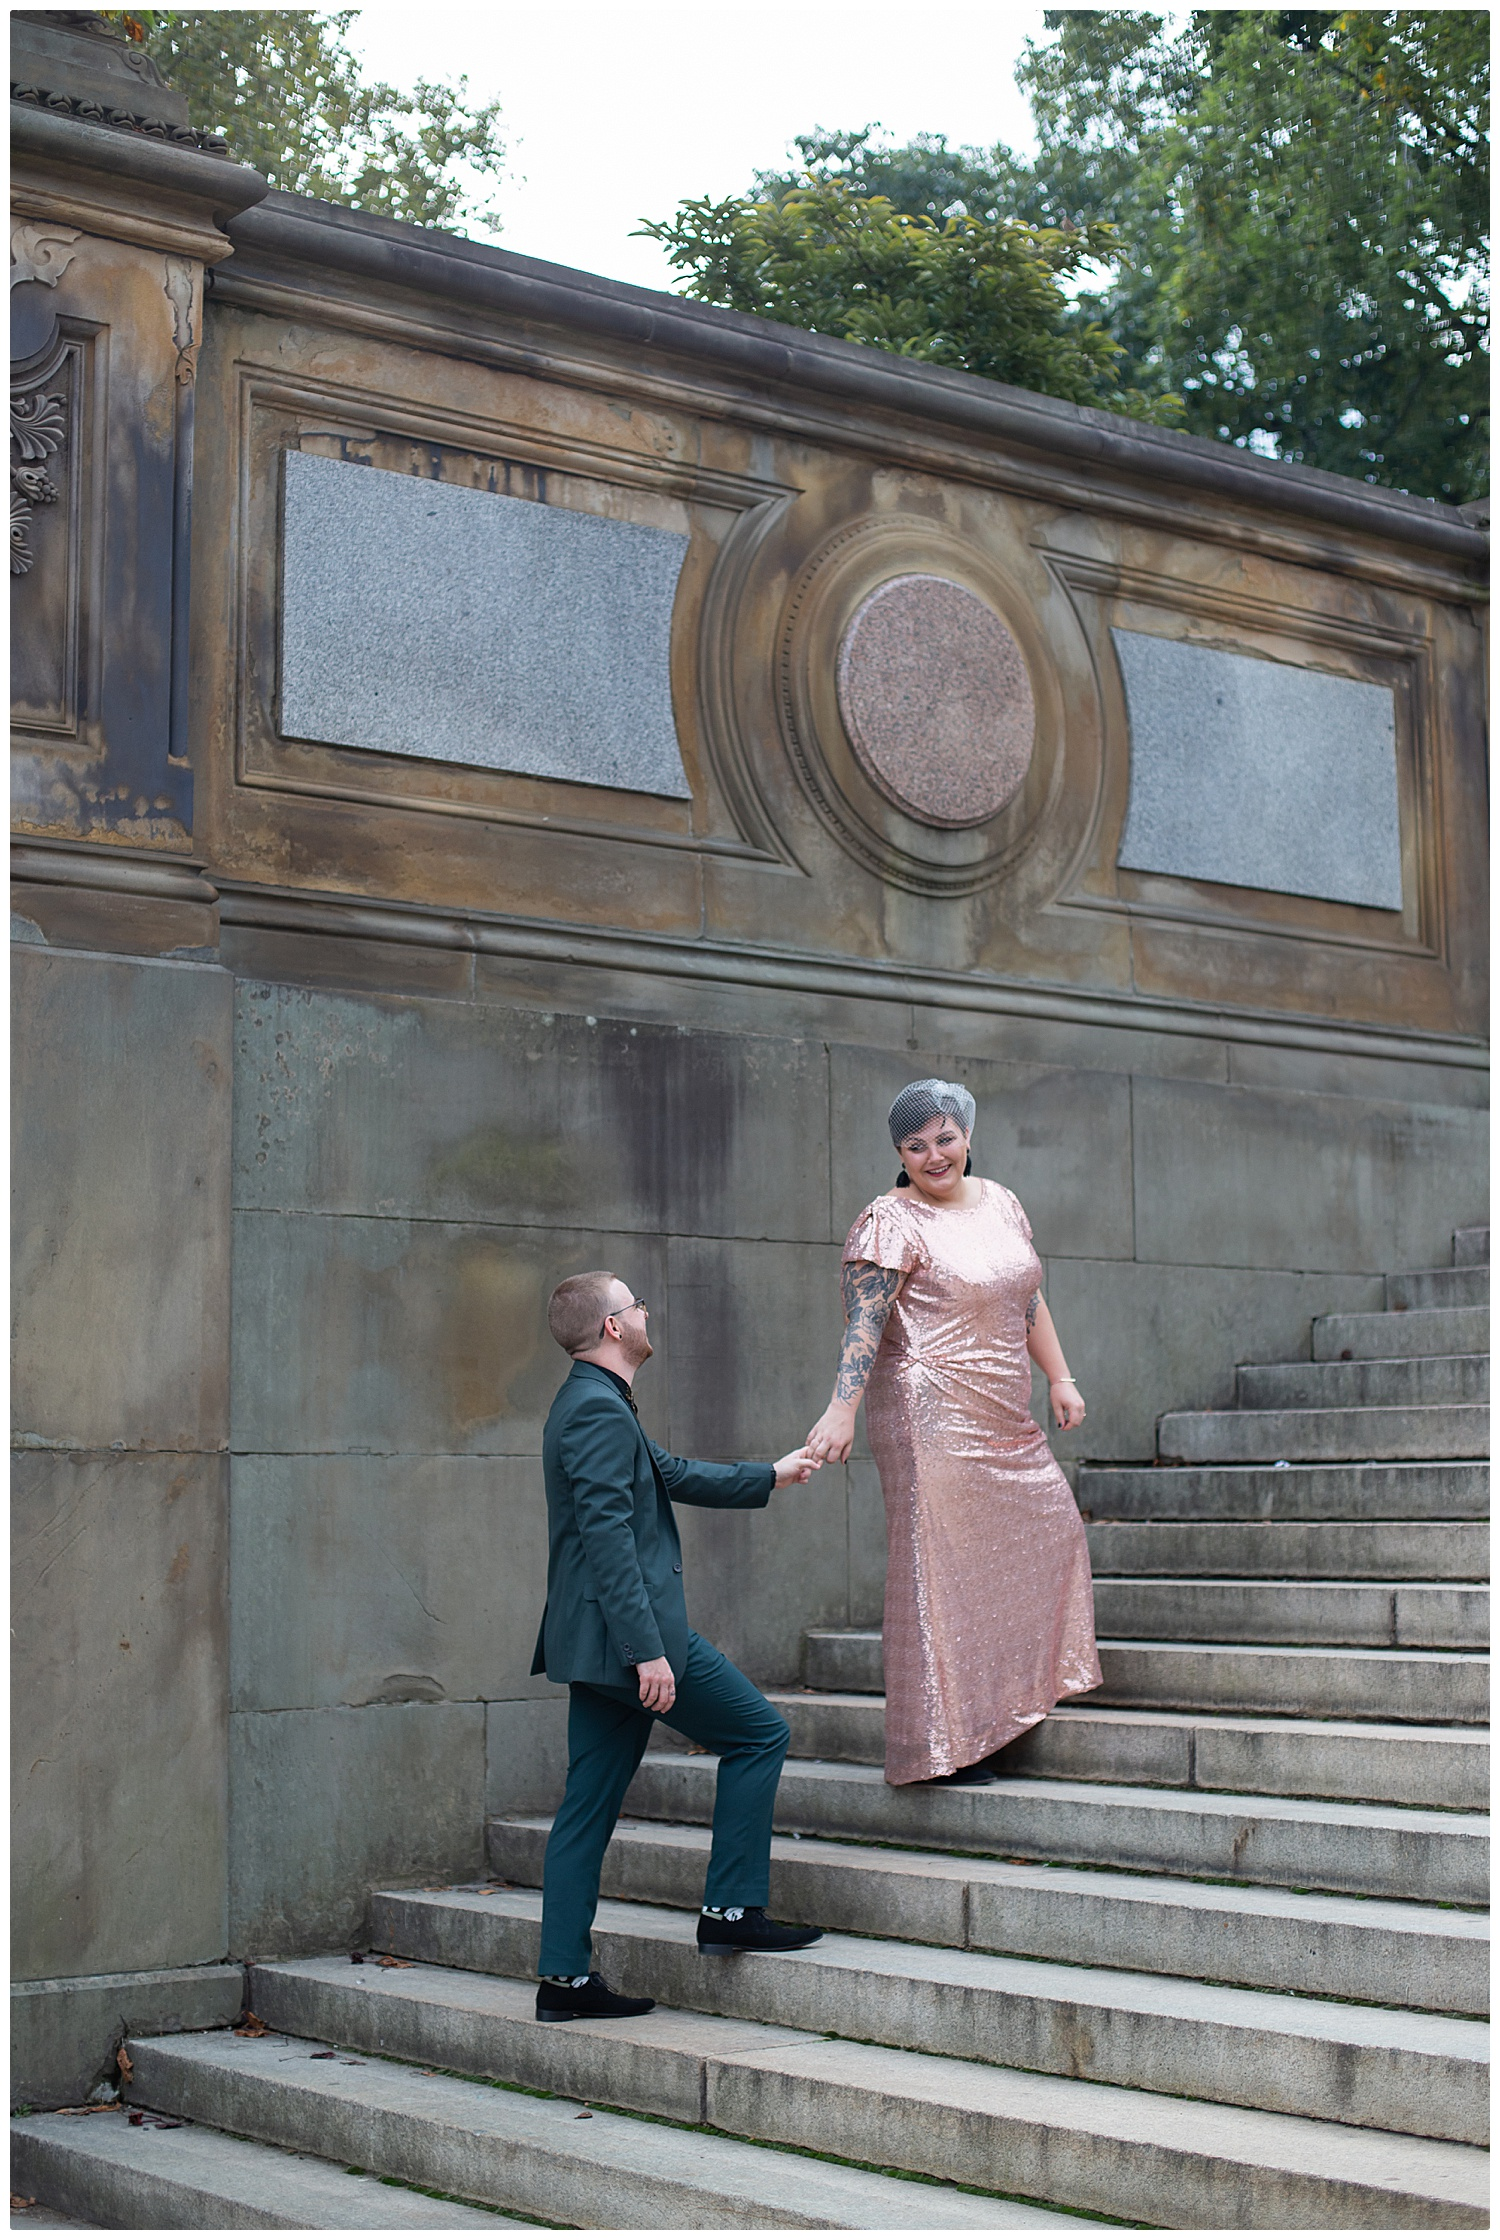 Kate-Alison-Photography-NYC-Central-Park-Elopement_0006.jpg